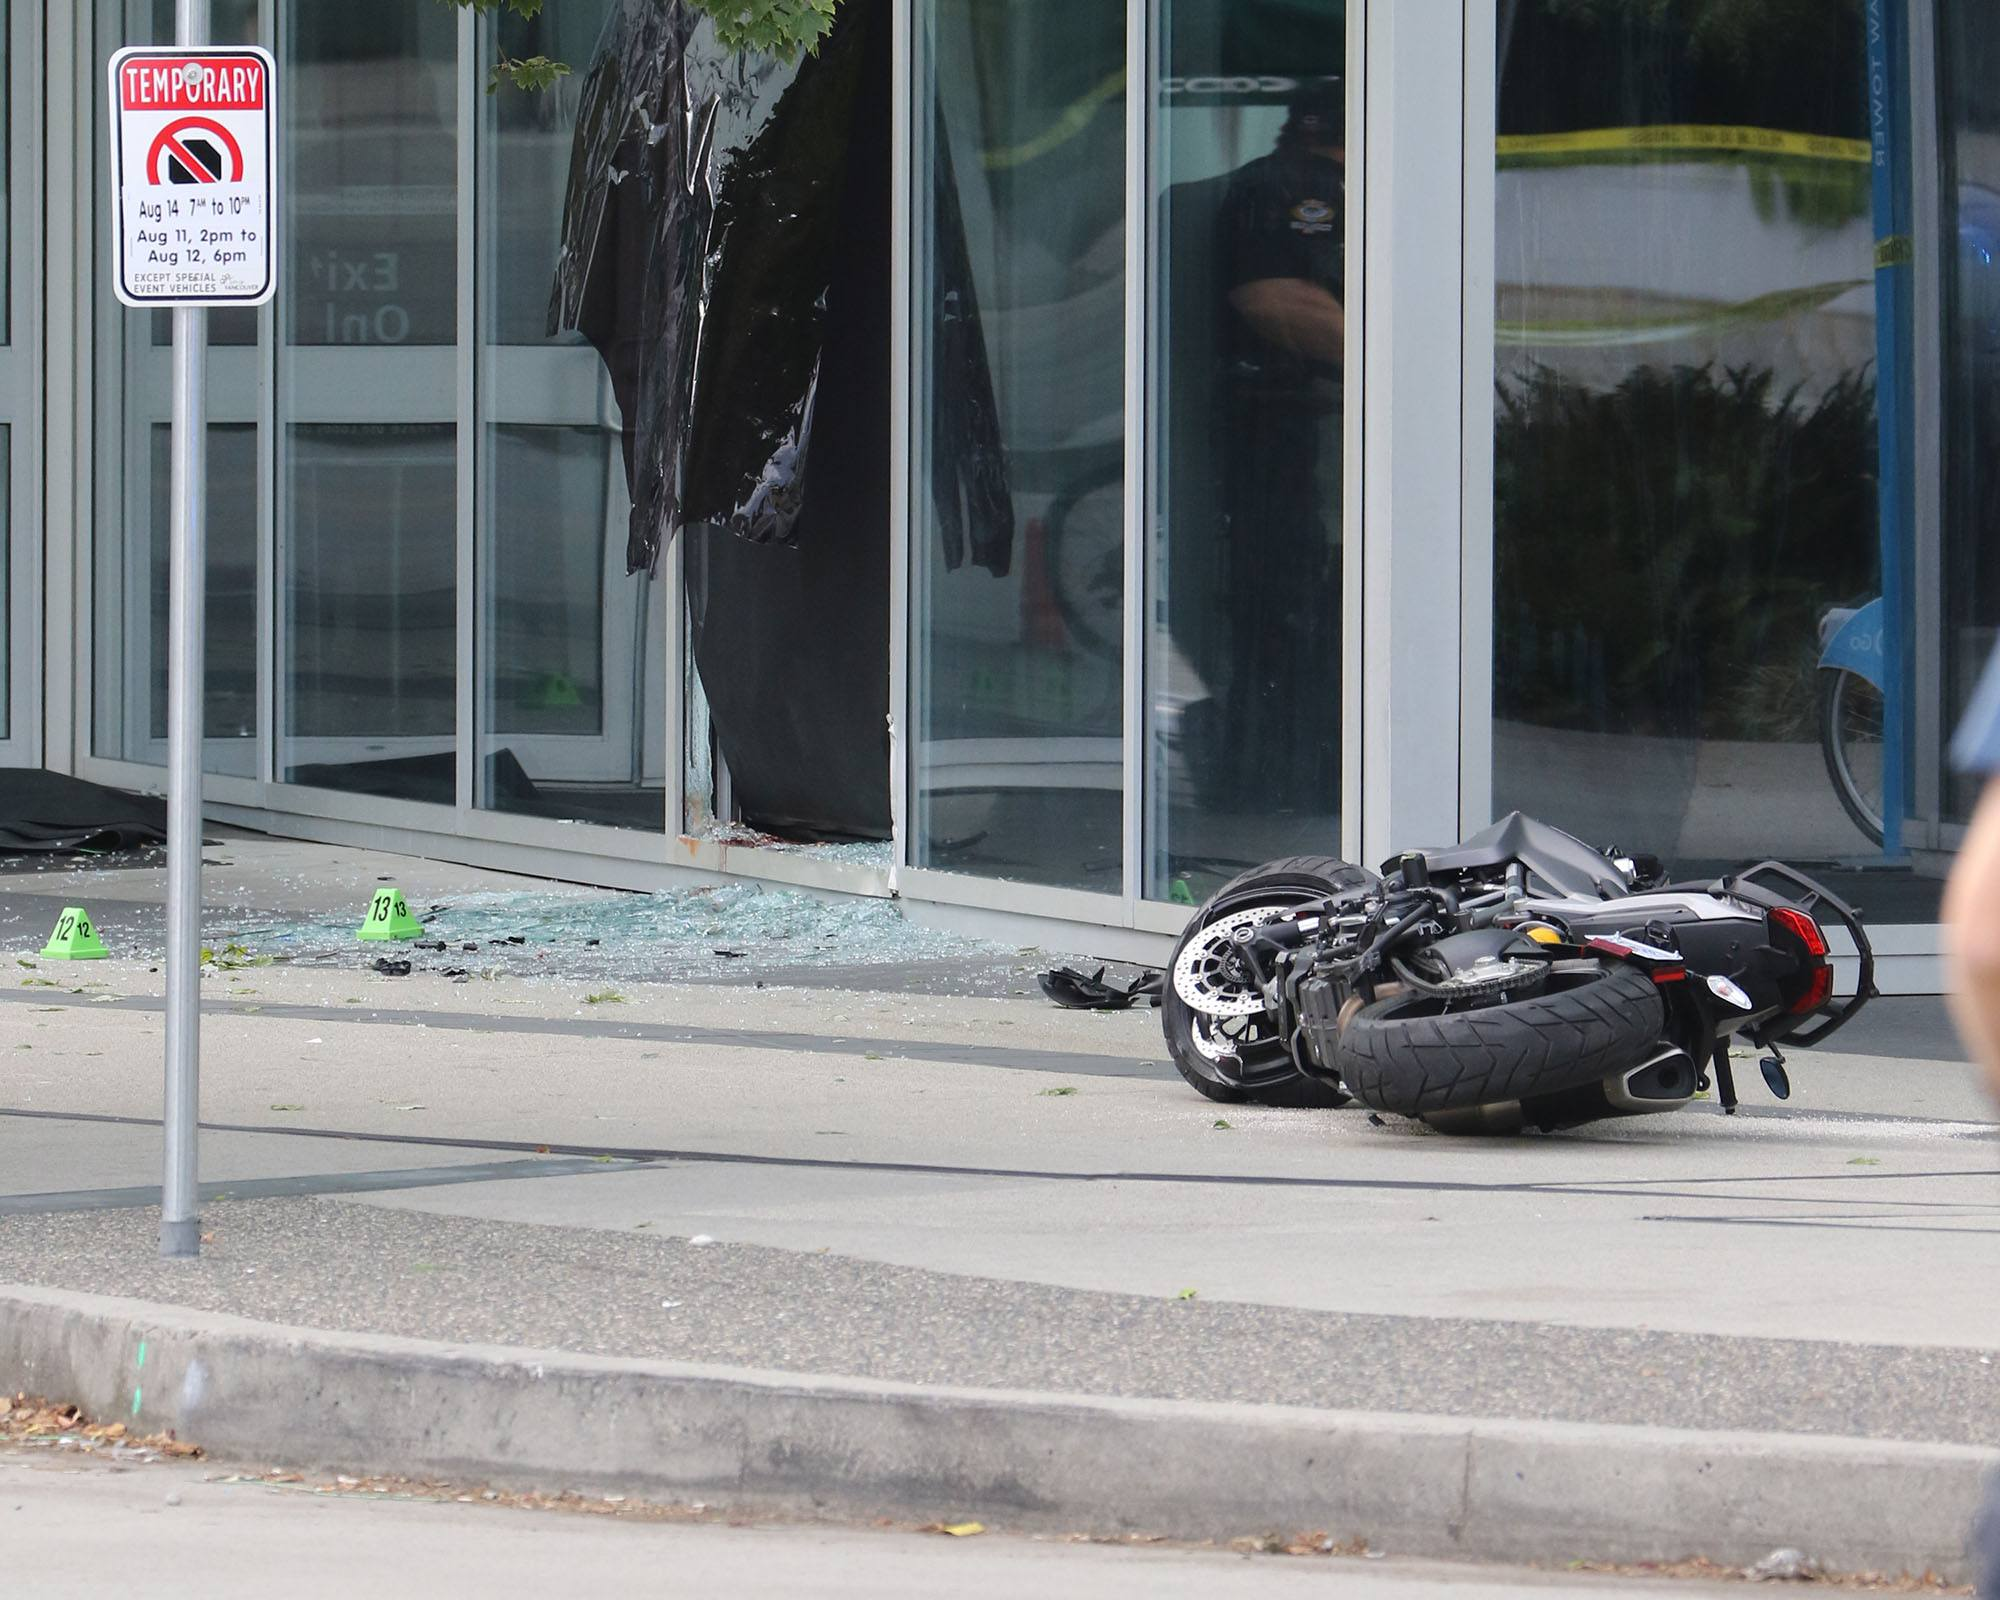 The motorcycle reportedly crashed through a window of the Shaw Tower near Jack Poole Plaza on Canada Place Way. (Daily Hive)